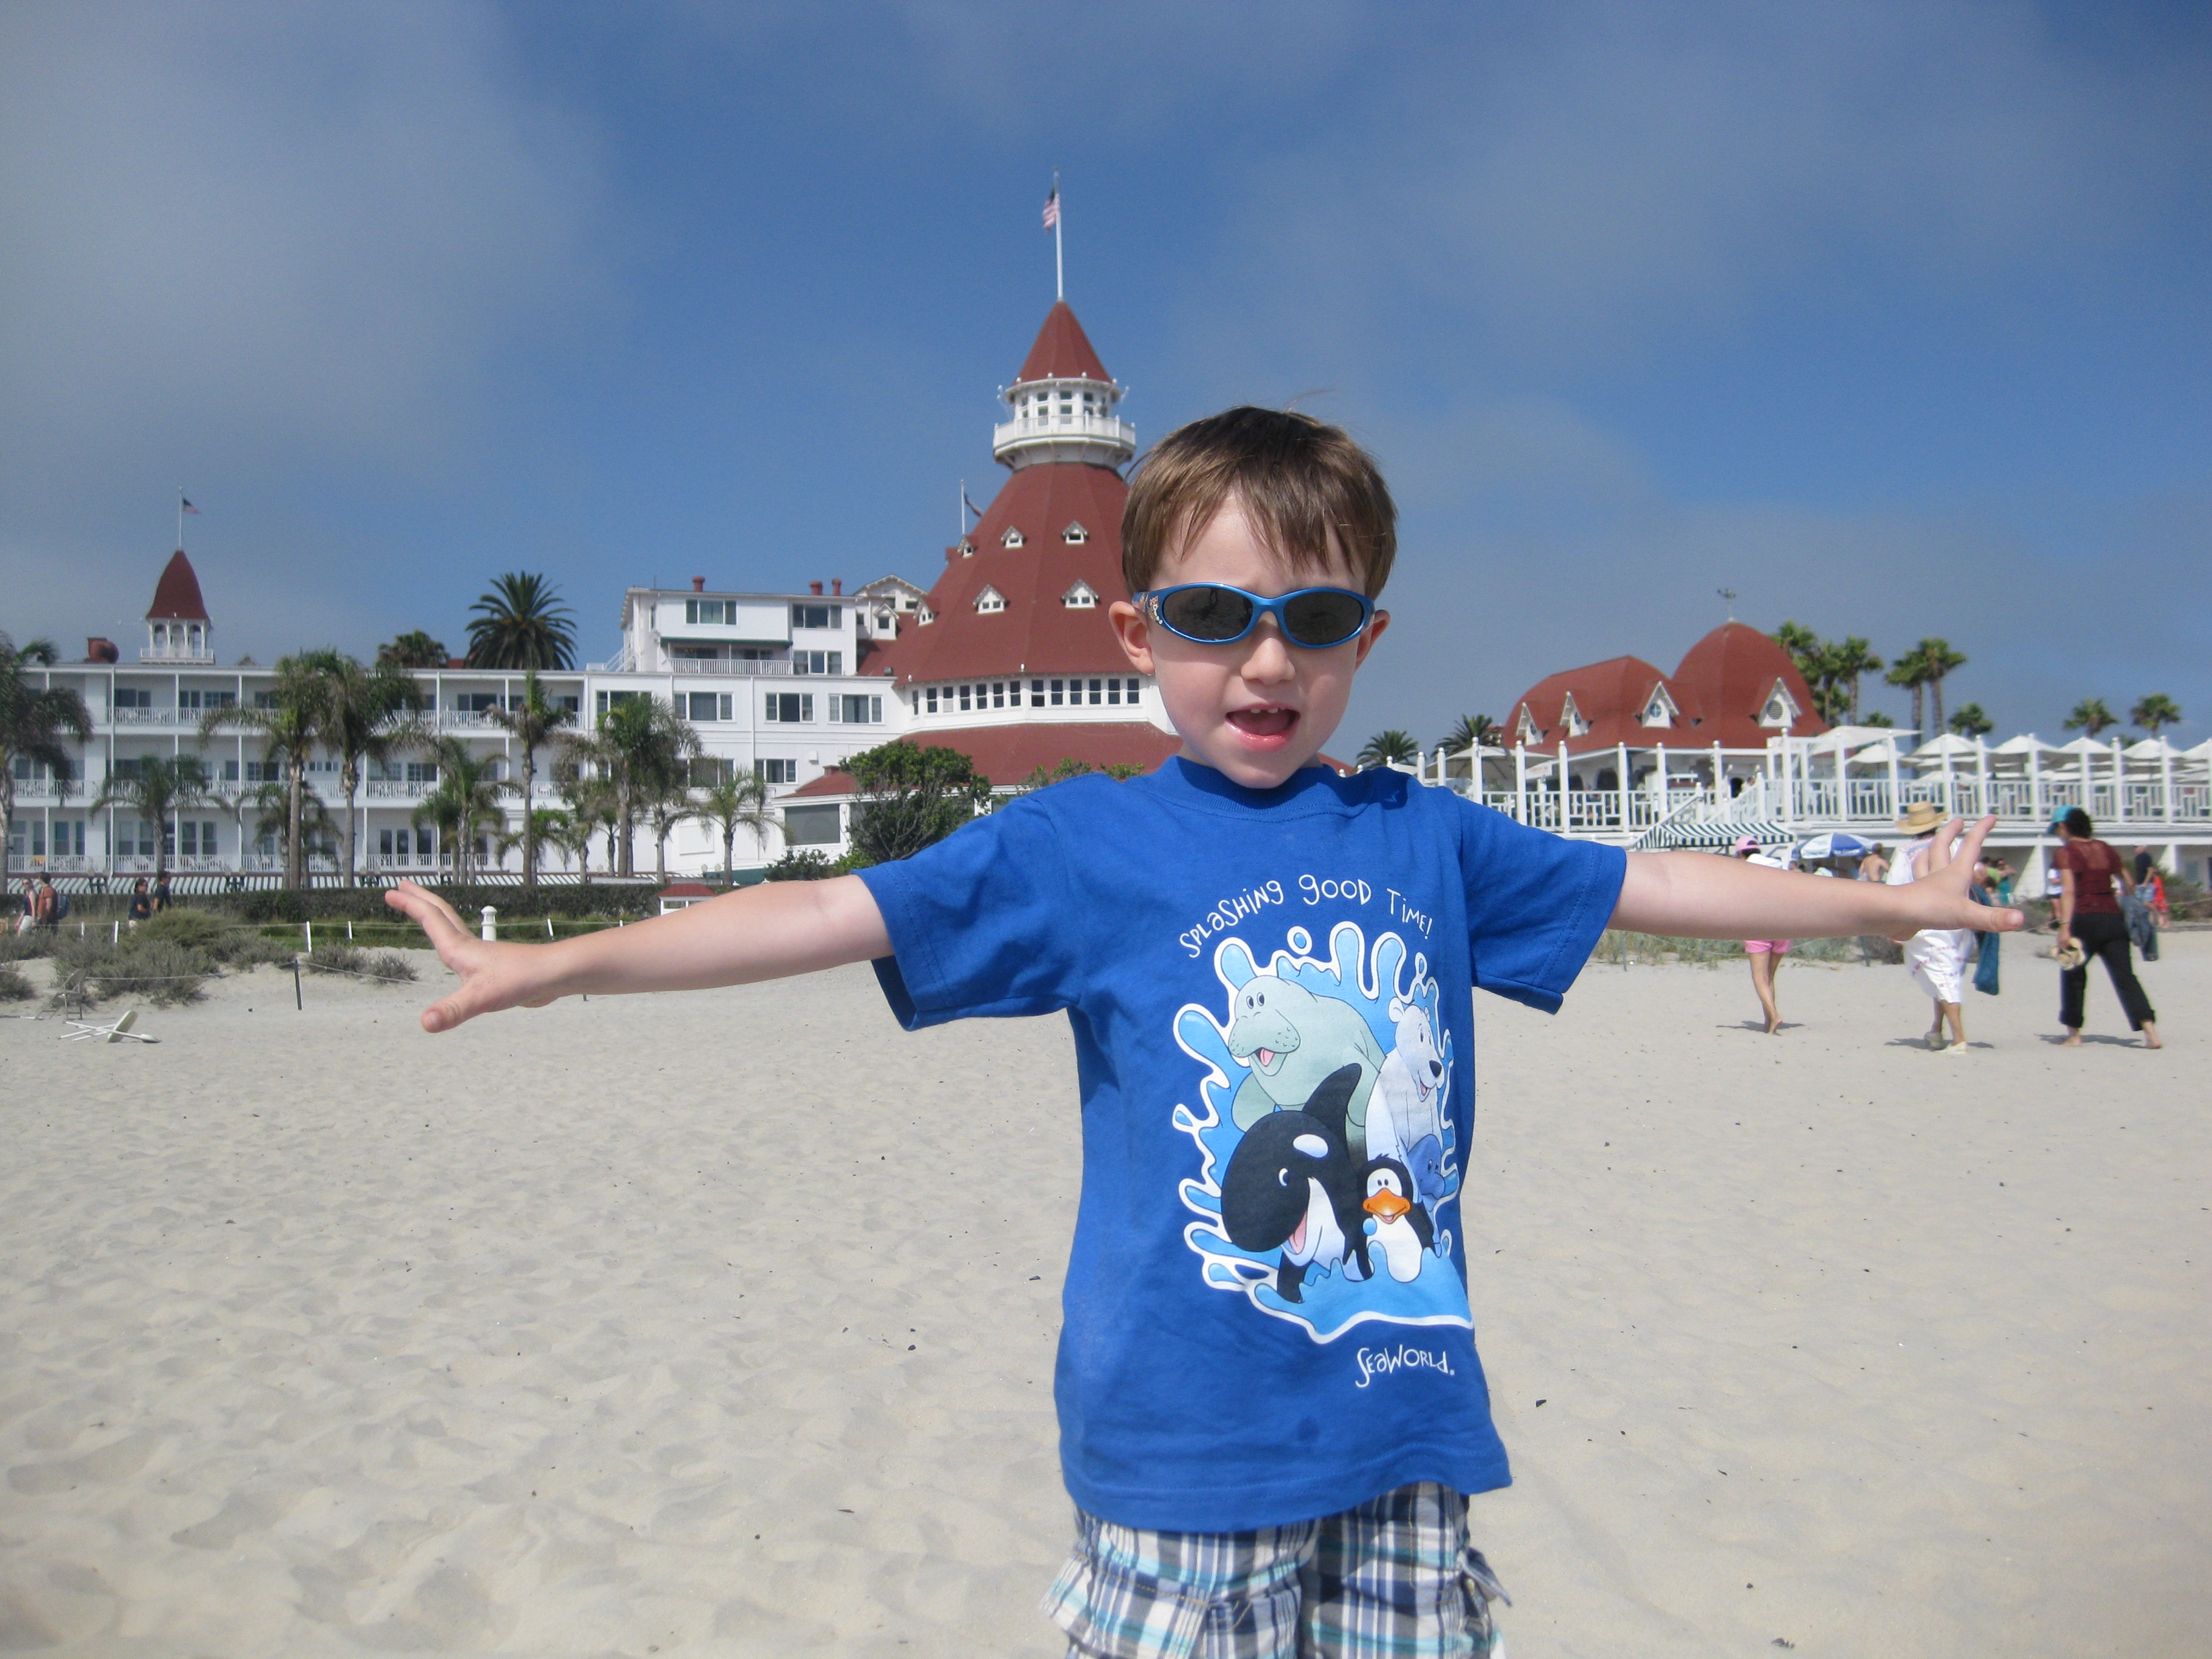 Family Hotels at San Diego Beaches on Sale Now!